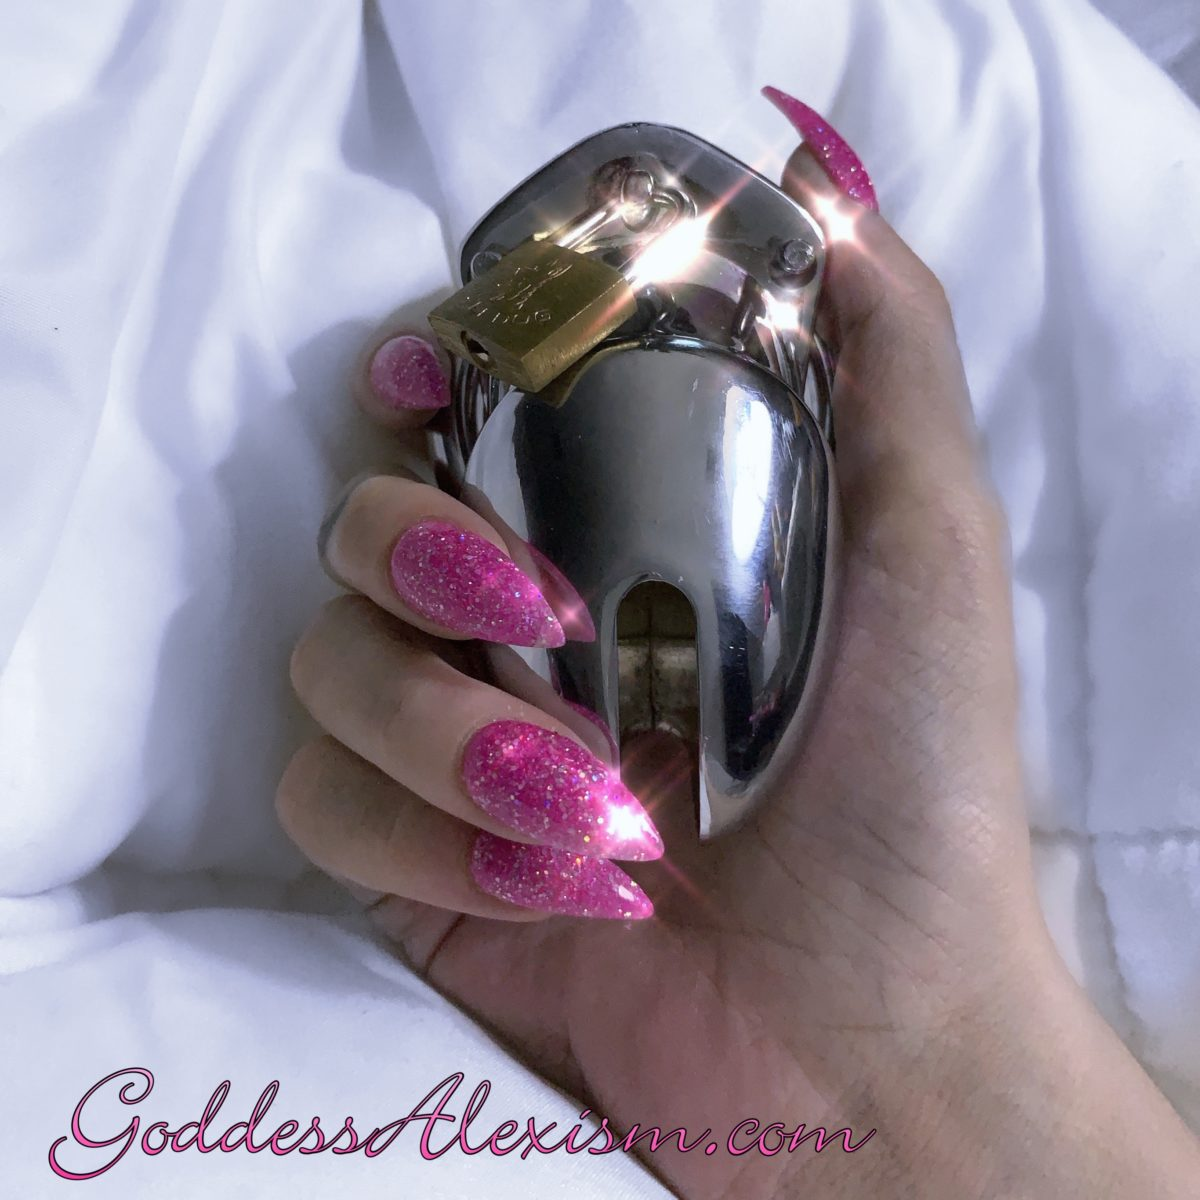 Chastity is forever. 1 week will turn to 1 month and 1 month will turn in to 1 year so fast.